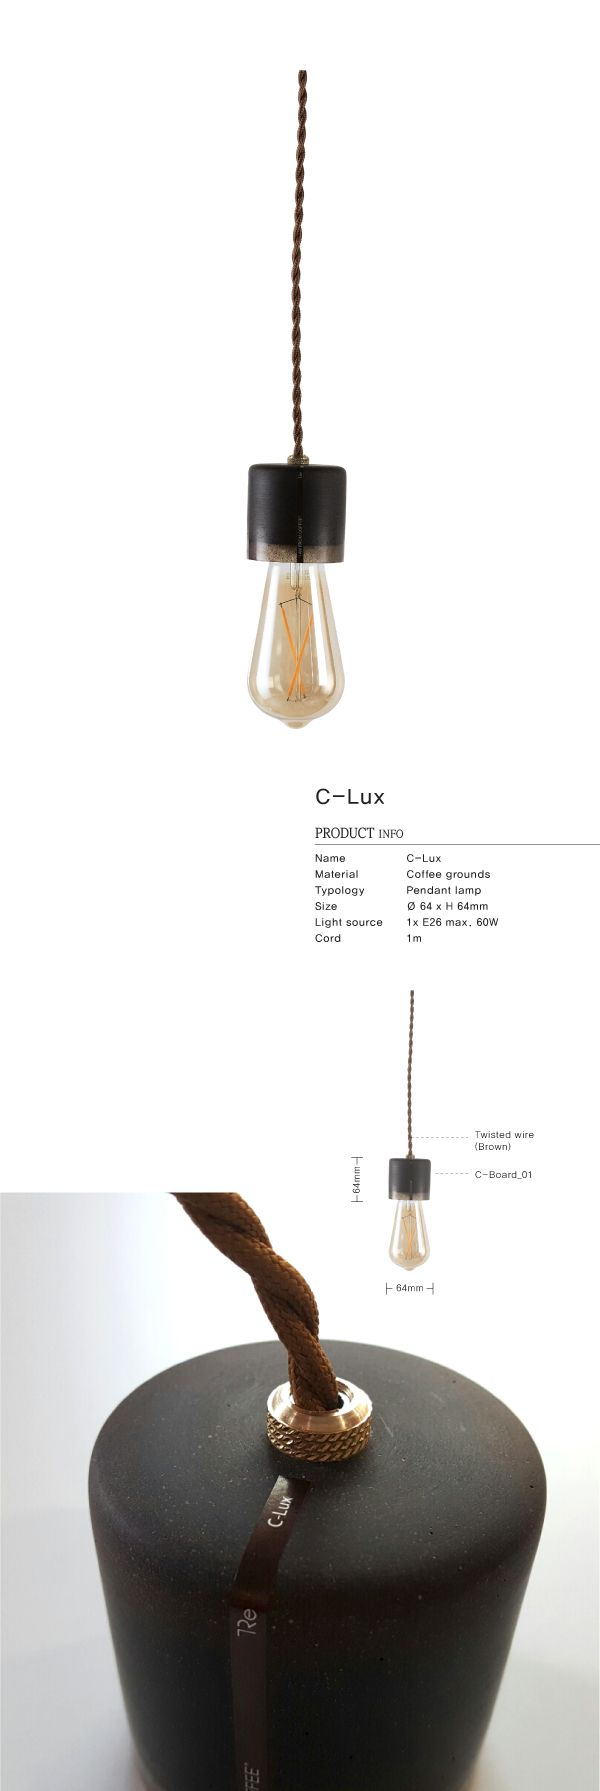 Coffee grounds upcycle product / This C-Lux is made locally using recycled 7 cups coffee grounds / Pendant lamp